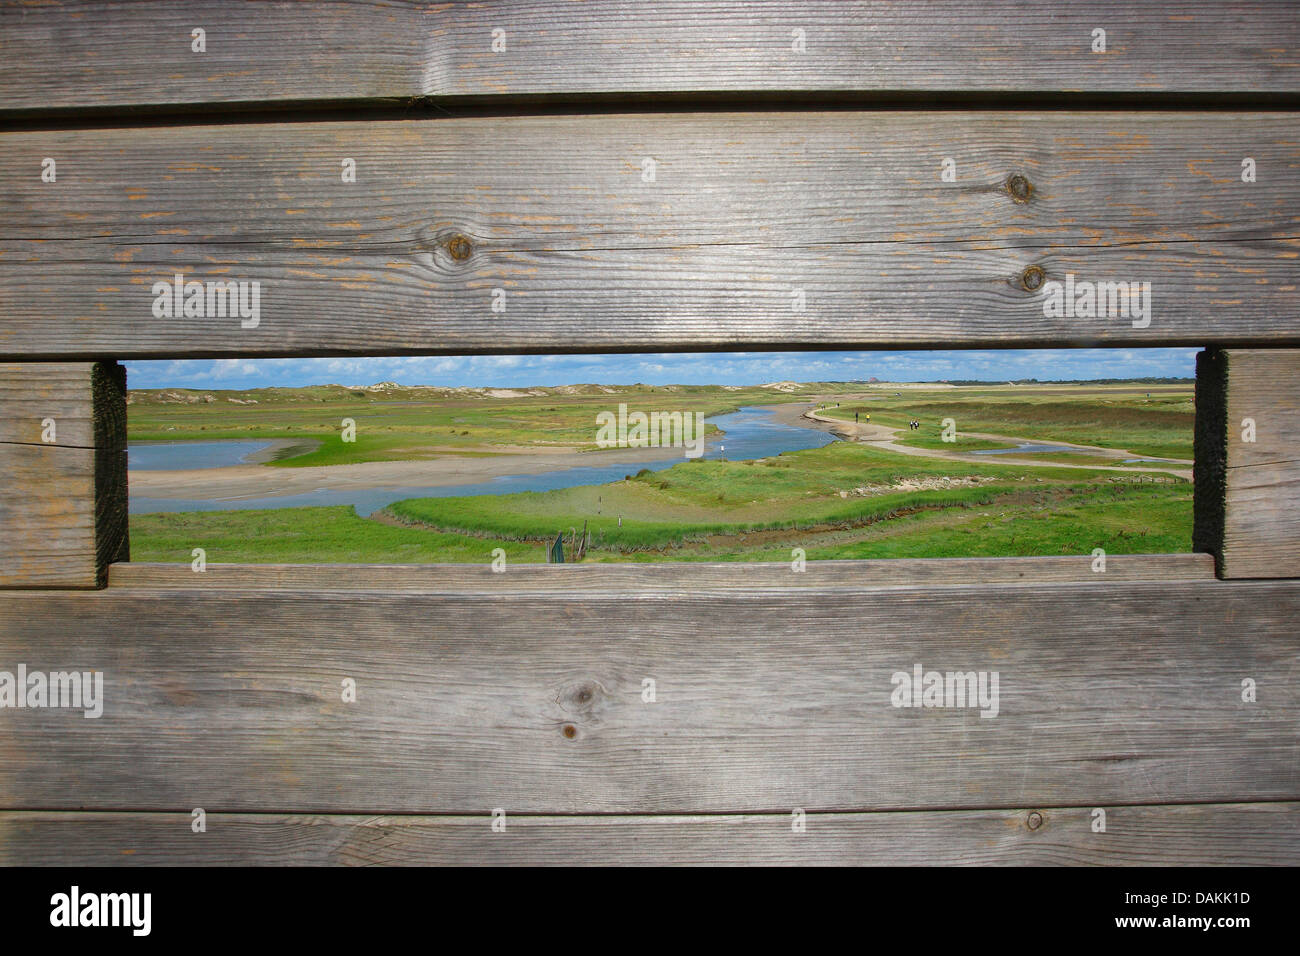 meadow and river landscape seen through a birding hide, Belgium, Zwin nature reserve - Stock Image